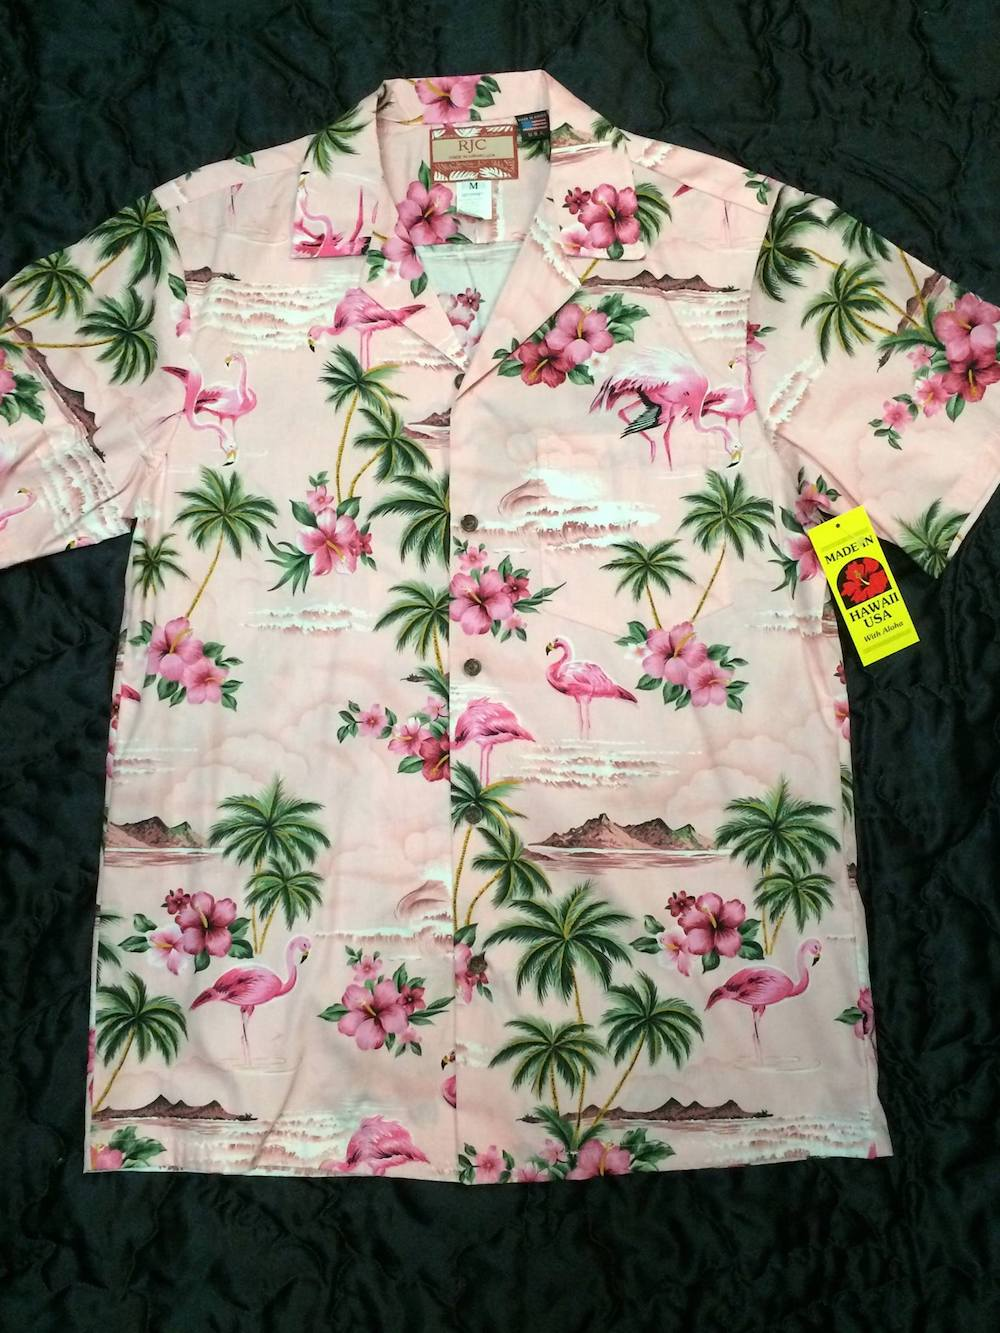 Honolulu best vintage shops | Bailey's Antiques and Aloha Shirts